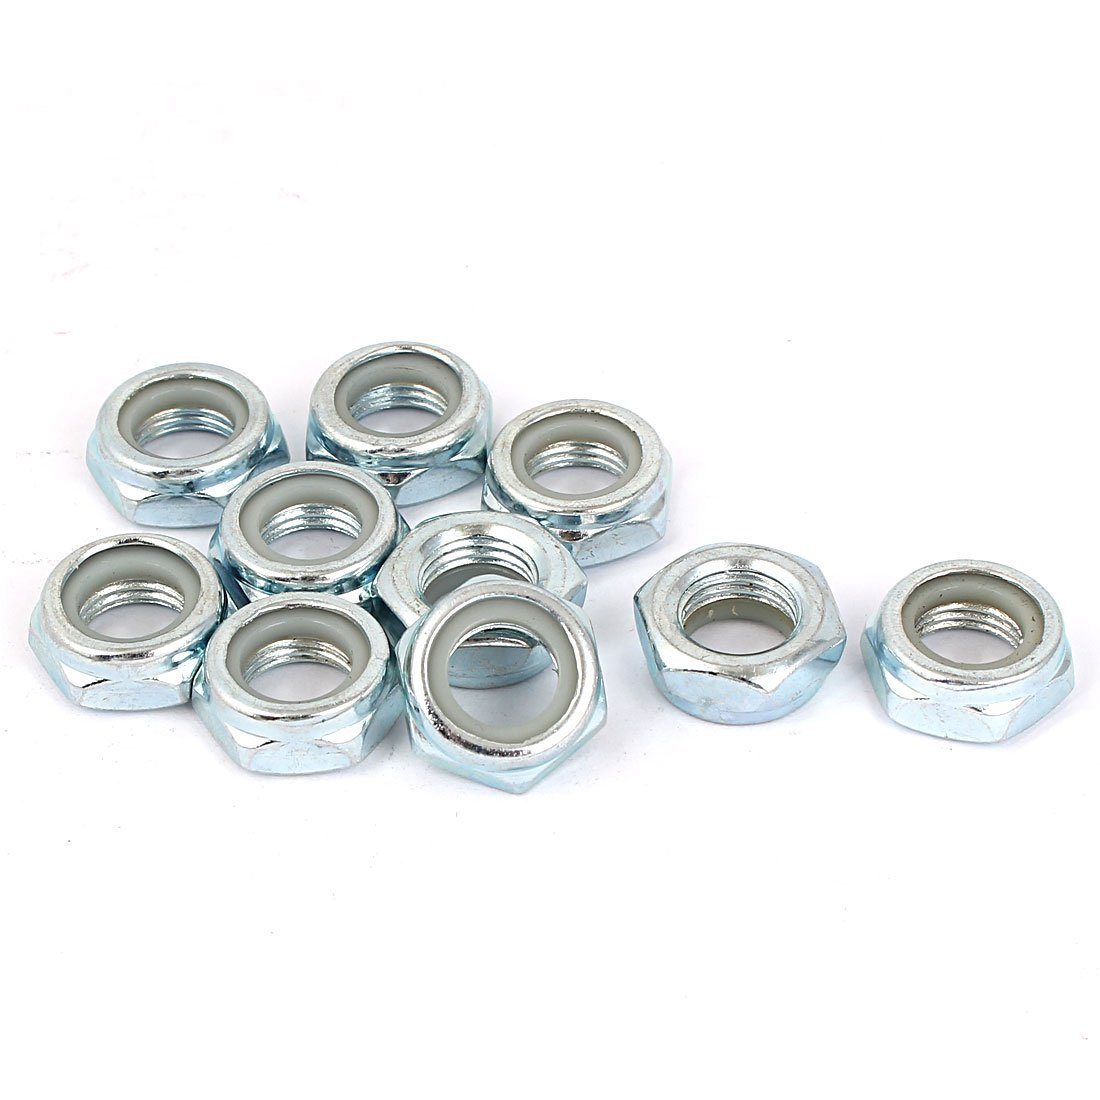 M12x1.25mm Hexagonal Safety nut with 10pcs self-Adhesive Nylon Insert